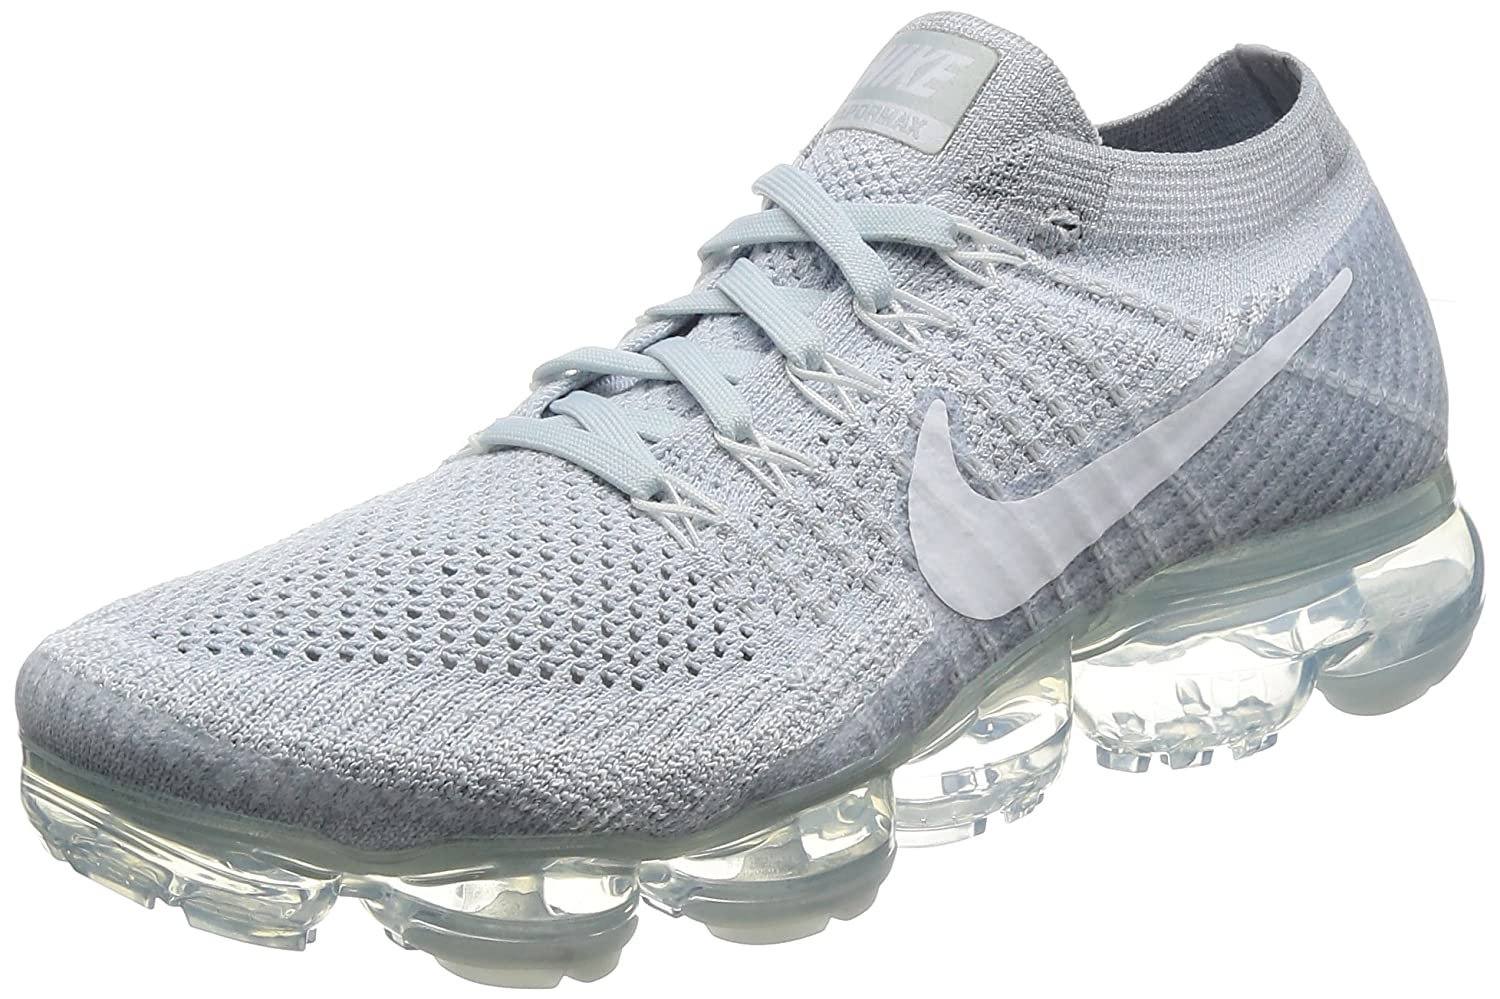 best cheap 7a064 8d7f7 Amazon.com   Men s Nike Air Vapormax Flyknit Running Shoe   Fashion Sneakers